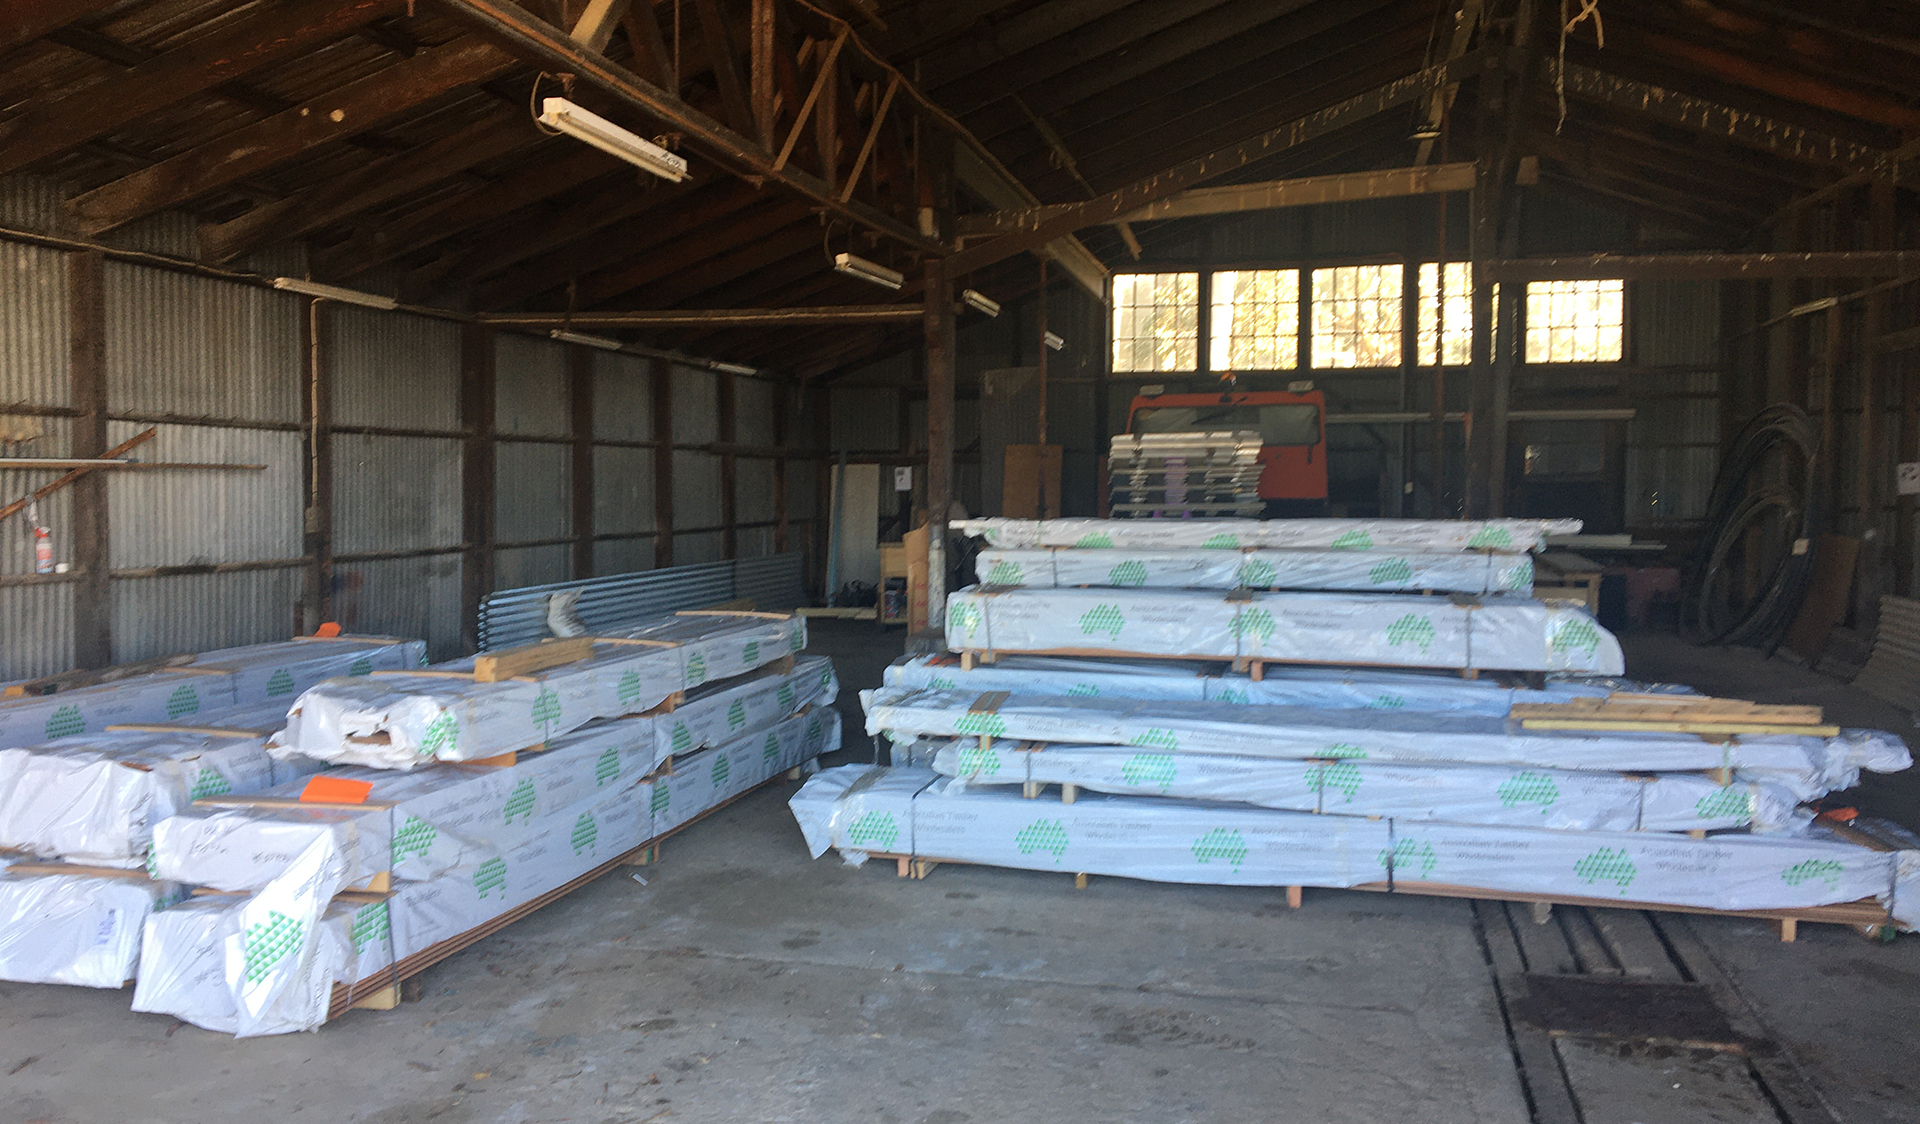 Maintenance works at Mount Buffalo Chalet - new weatherboards arrived for re-cladding work, 20 April 2020.